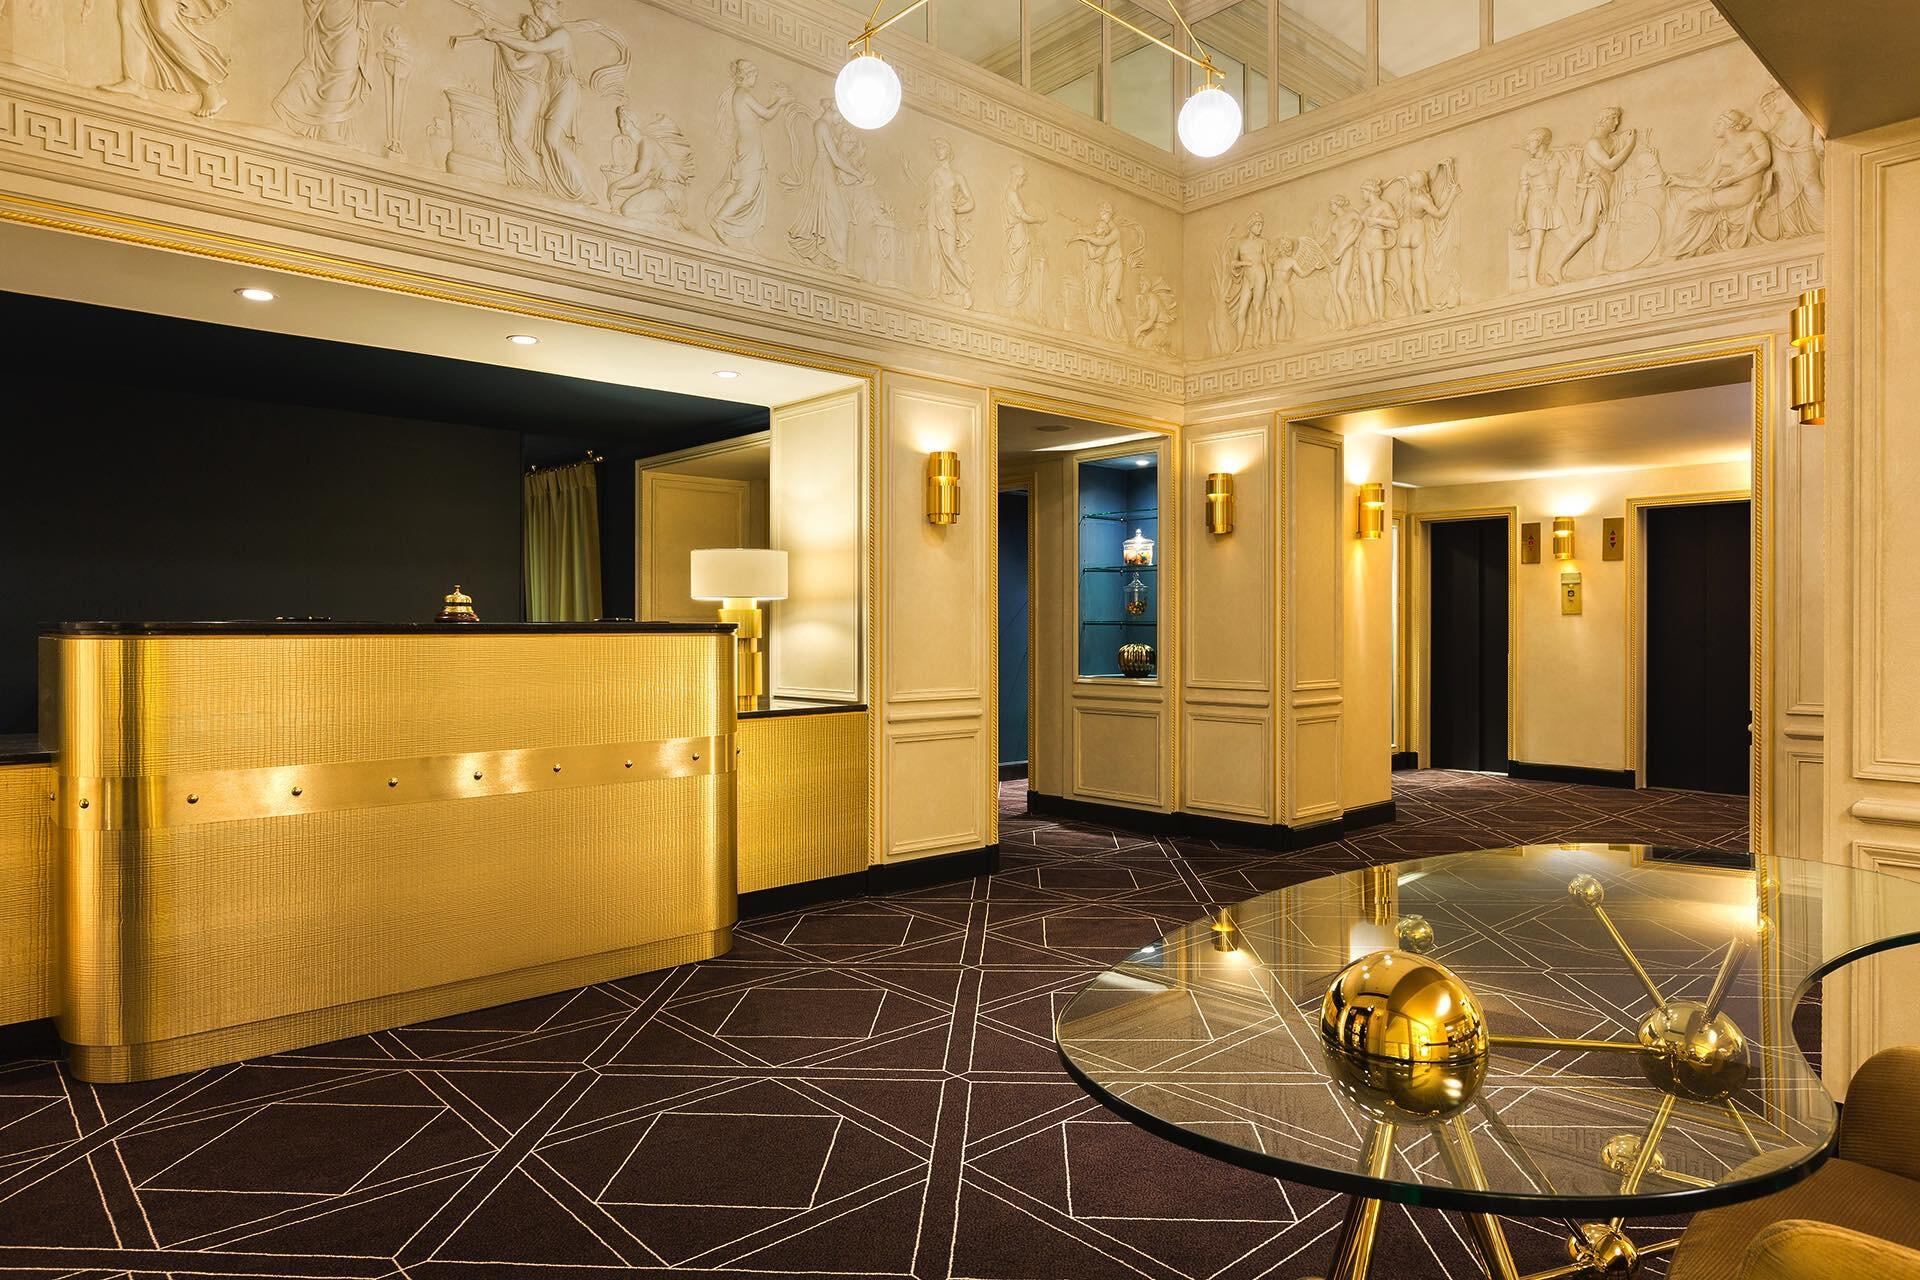 Hotel Barsey by Warwick Lobby Reception & Lifts